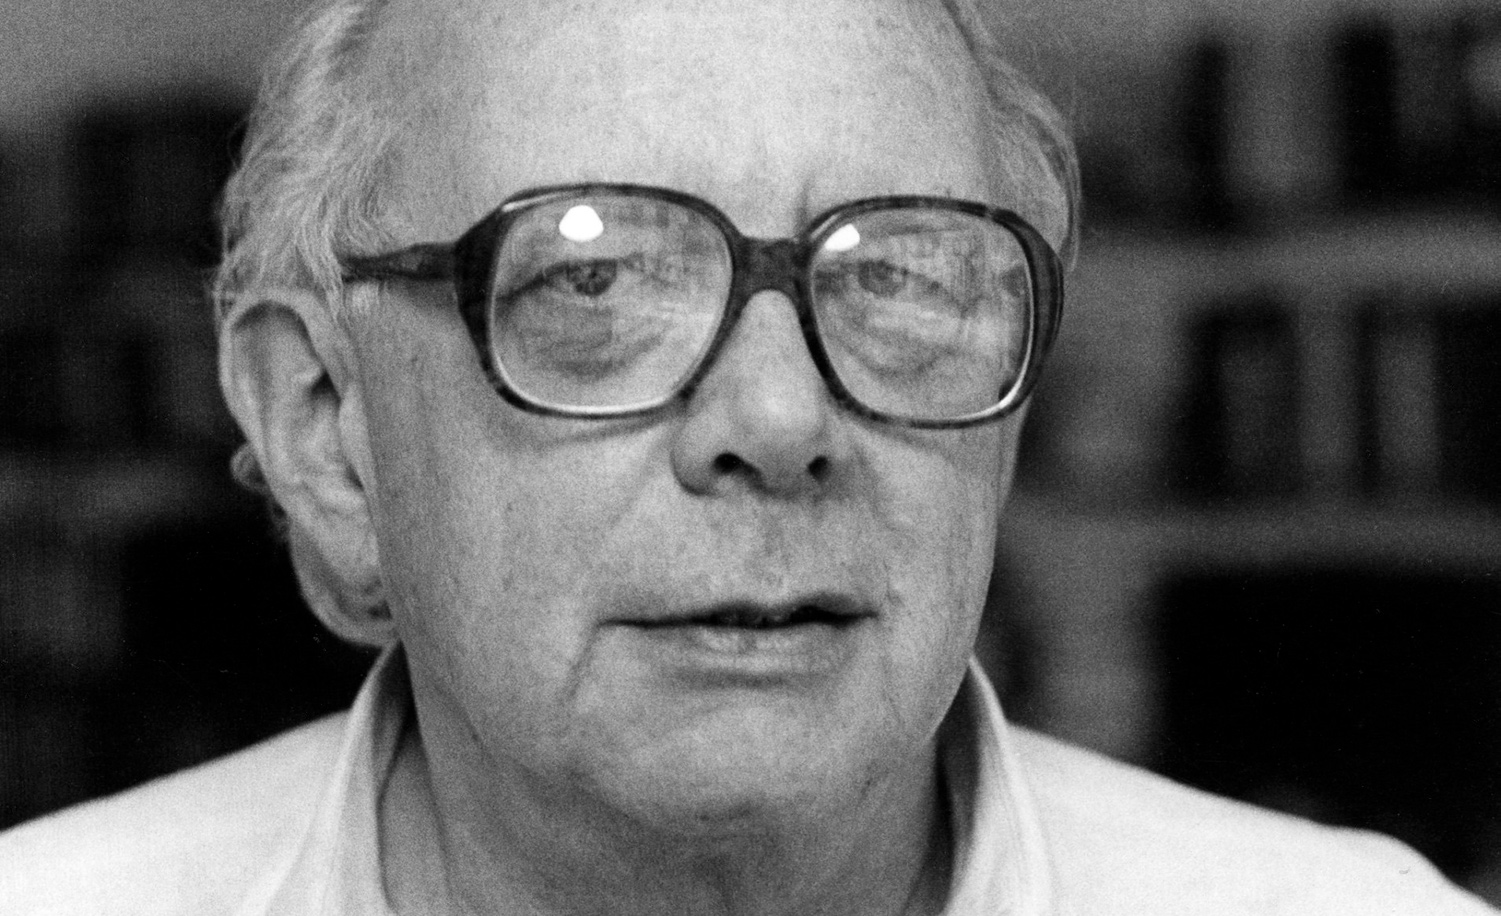 Irving Howe in New York in 1982. Fred W. McDarrah/Getty Images.